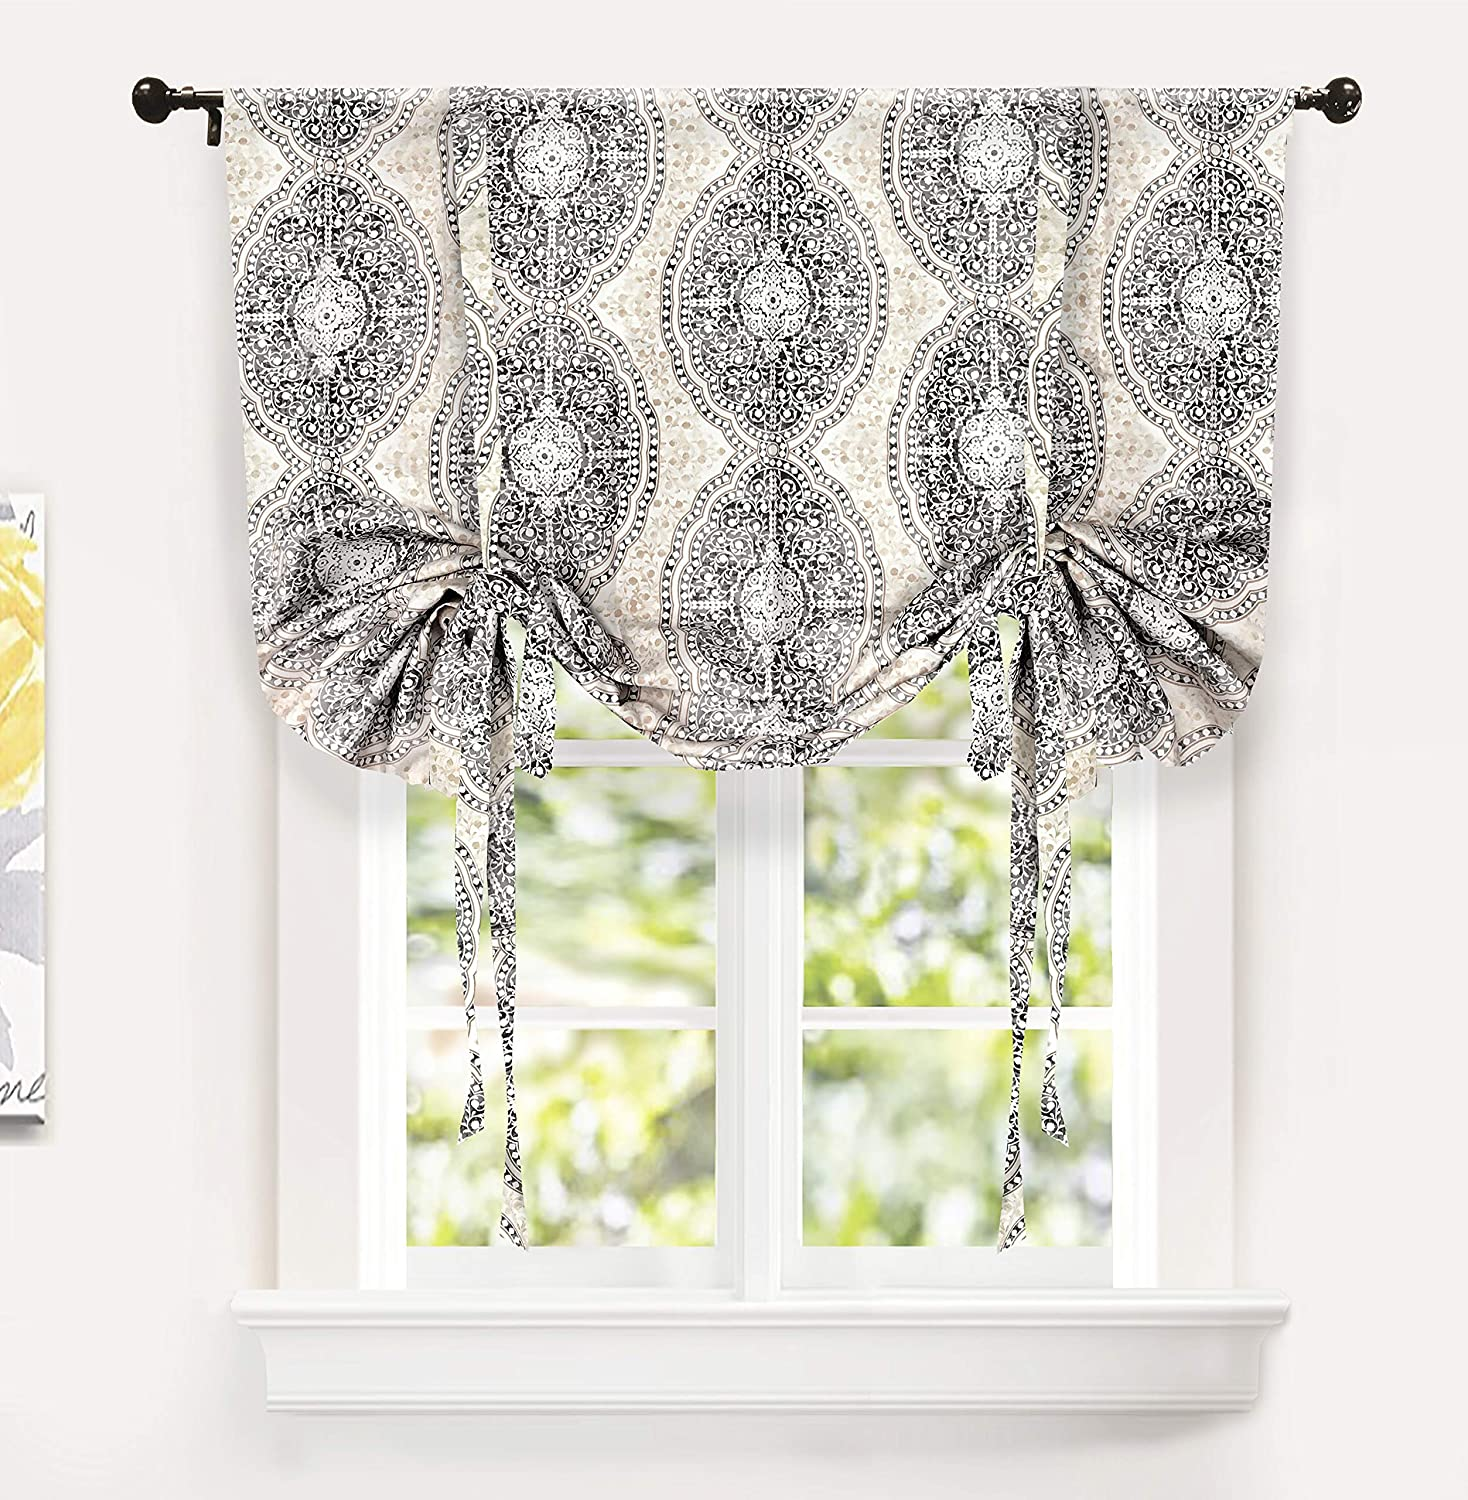 "DriftAway Adrianne Tie Up Curtain,Damask/Floral Pattern Thermal/Room Darkening Insulated Blackout Window Curtain,Adjustable Balloon Curtain Shade for Small Window Rod Pocket,Single,45""x63""(Beige/Gray)"